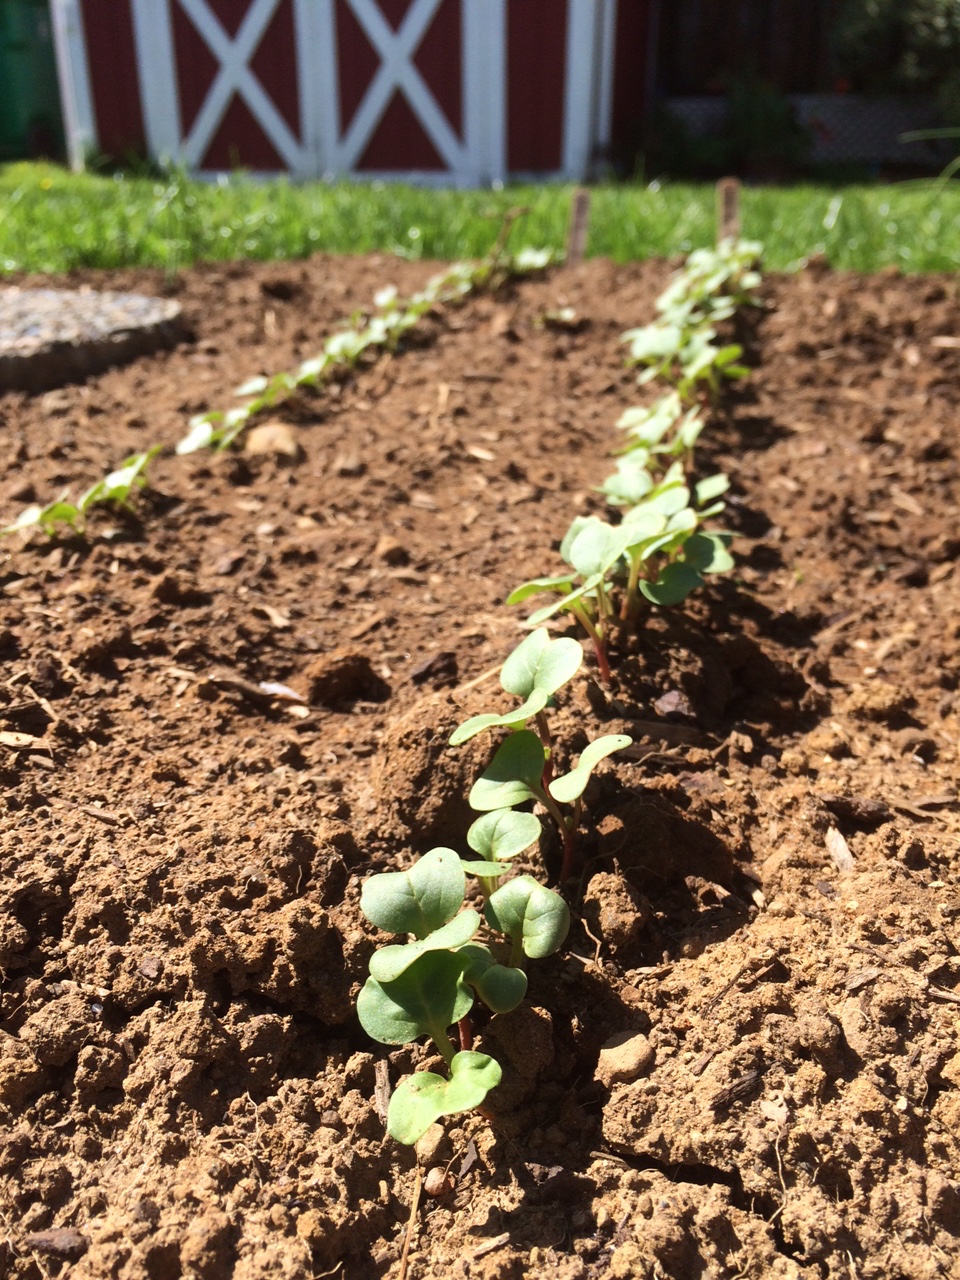 Radishes germinating in freshly tilled garden beds